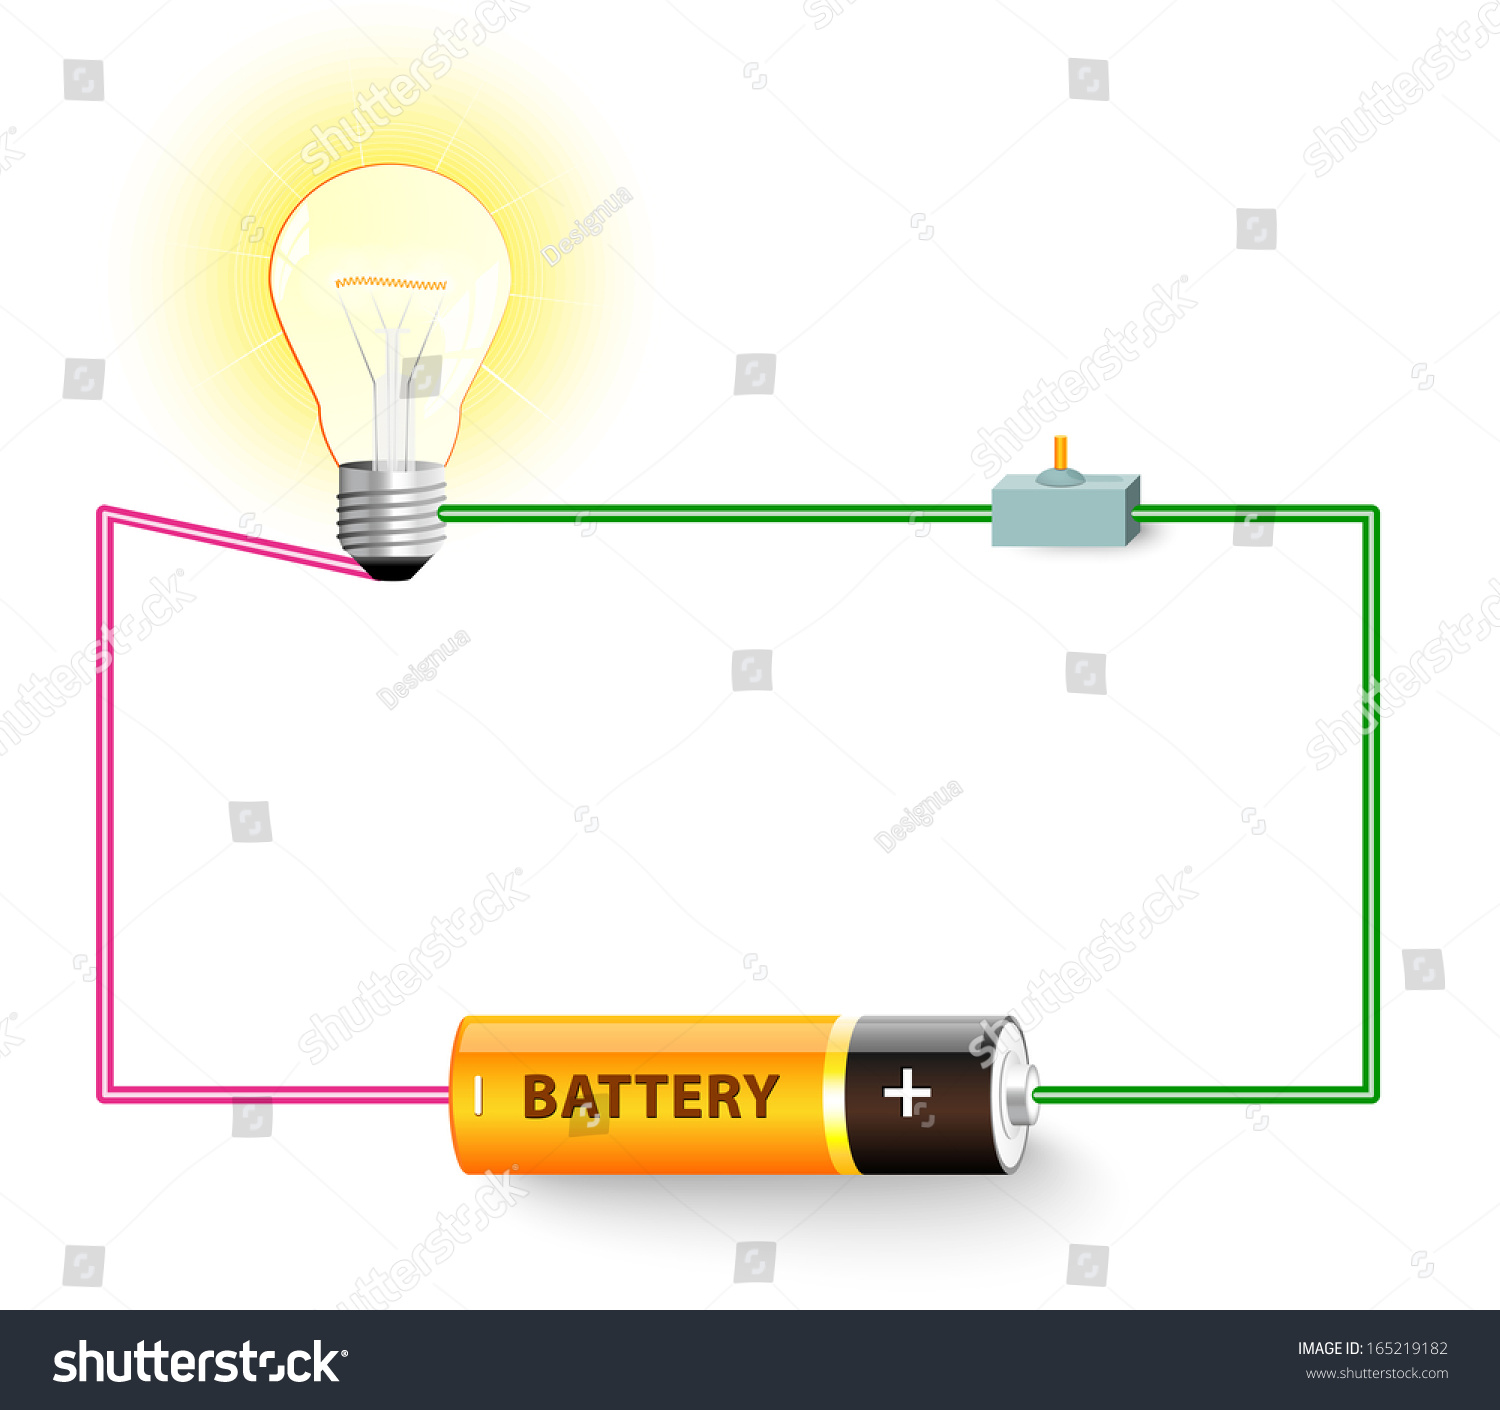 Simple Electric Circuit Electrical Network Switch Stock Illustration ...